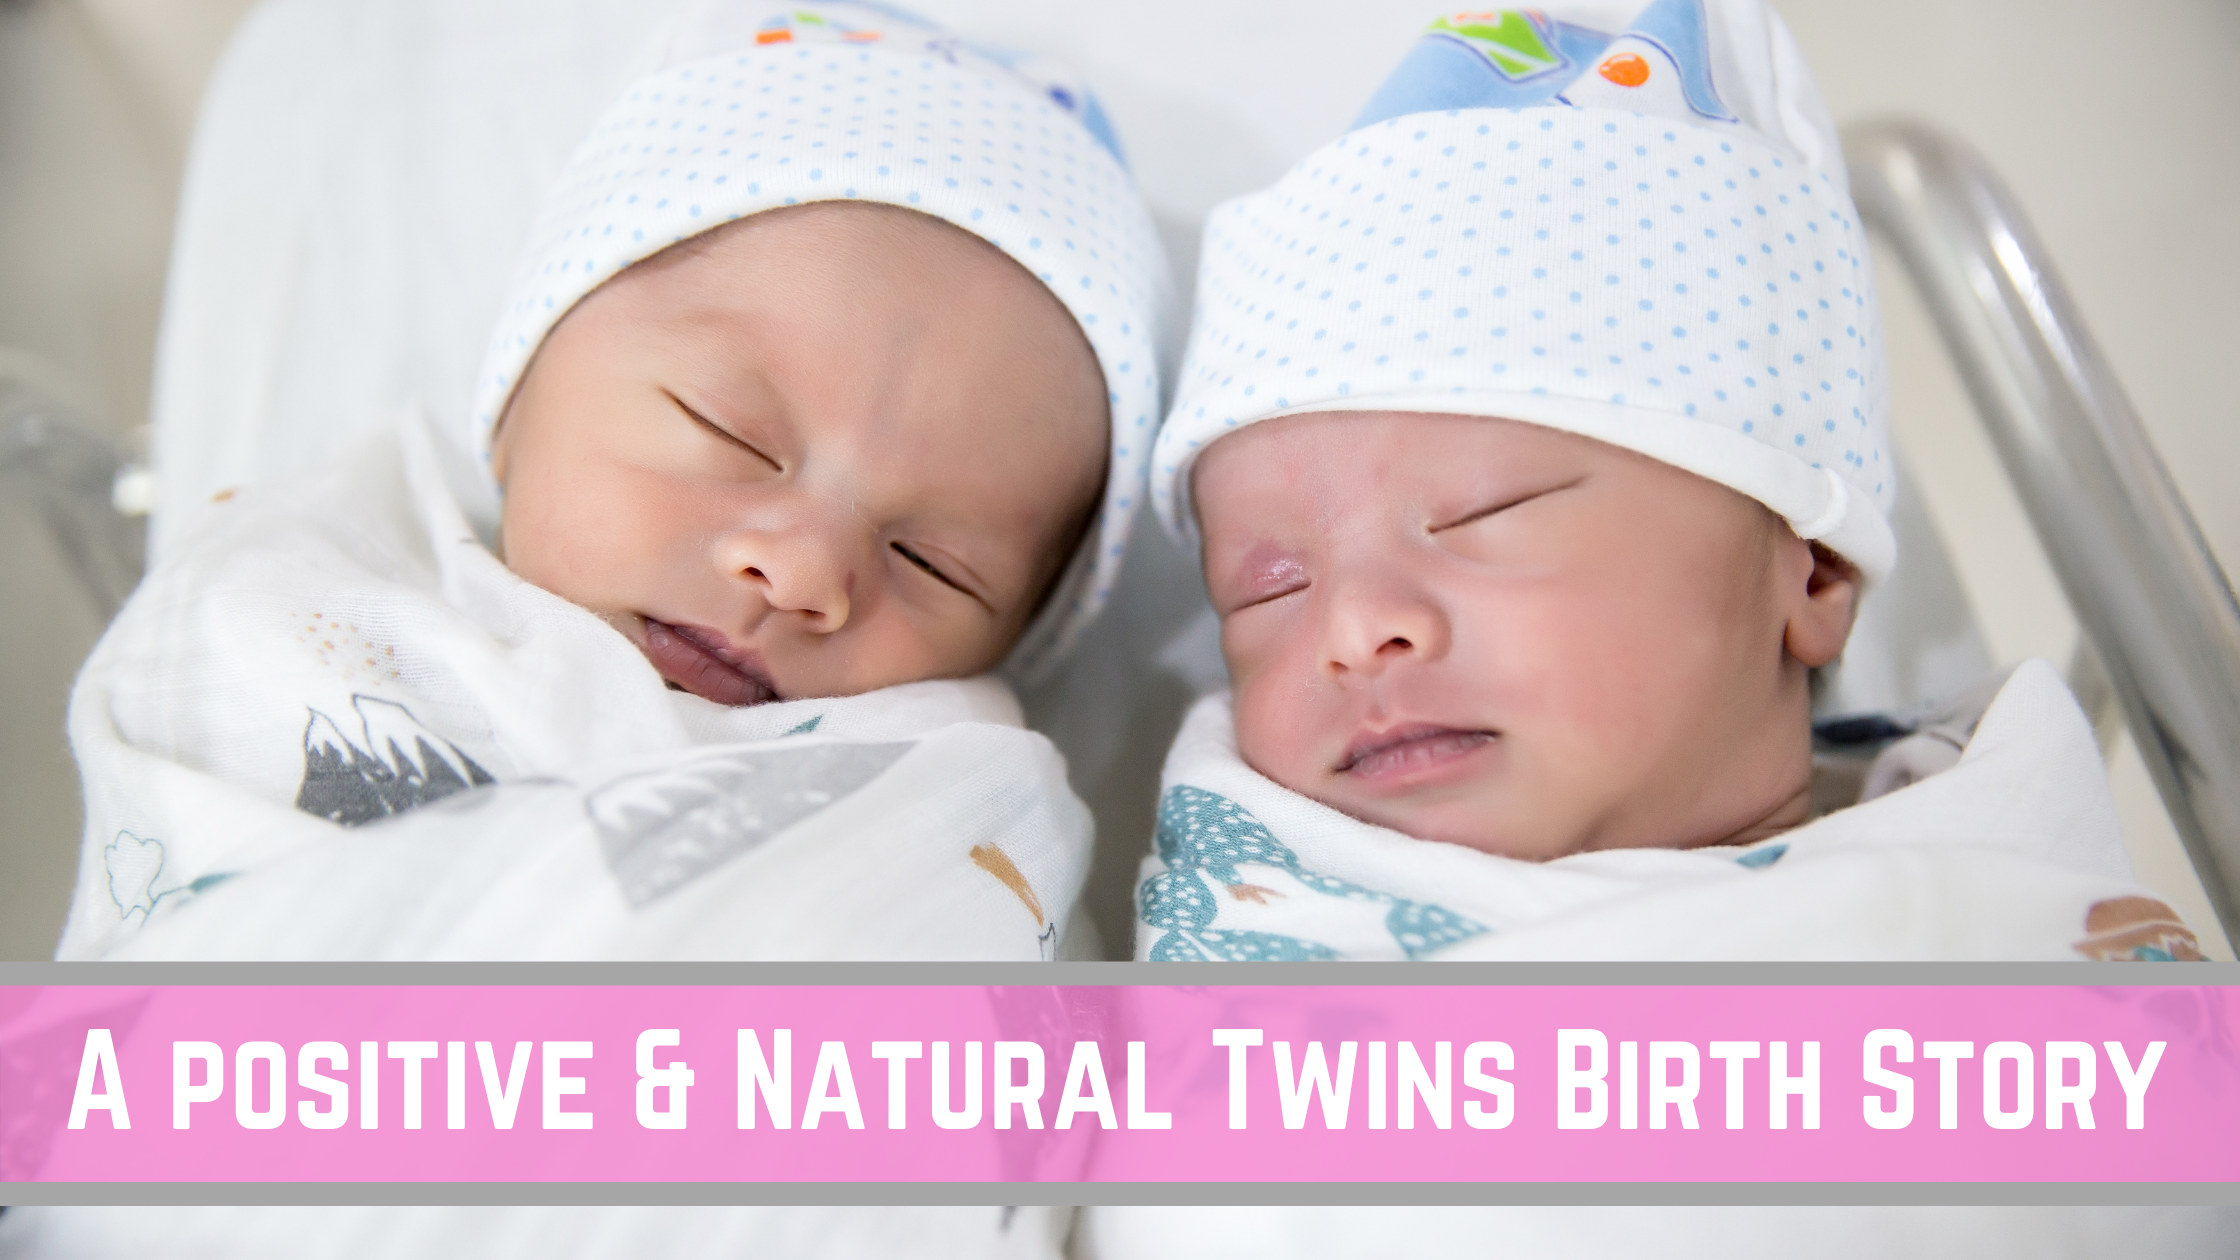 Kim's Positive & Natural Twins Birth Story